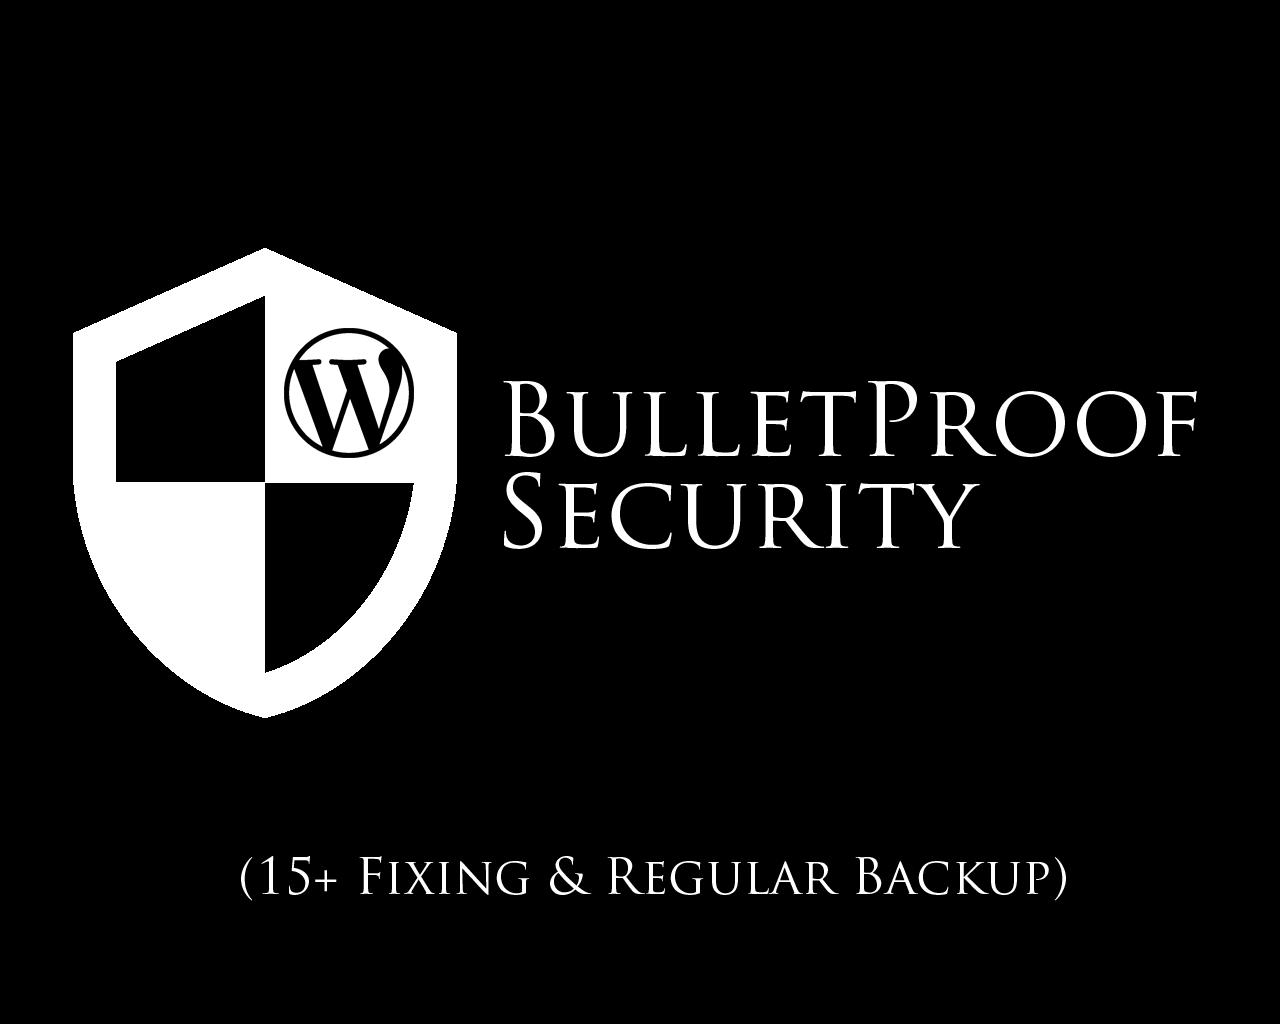 Wordpress BulletProof Security (15+ Fixing & Regular Backup Setup) by hasanet - 101009